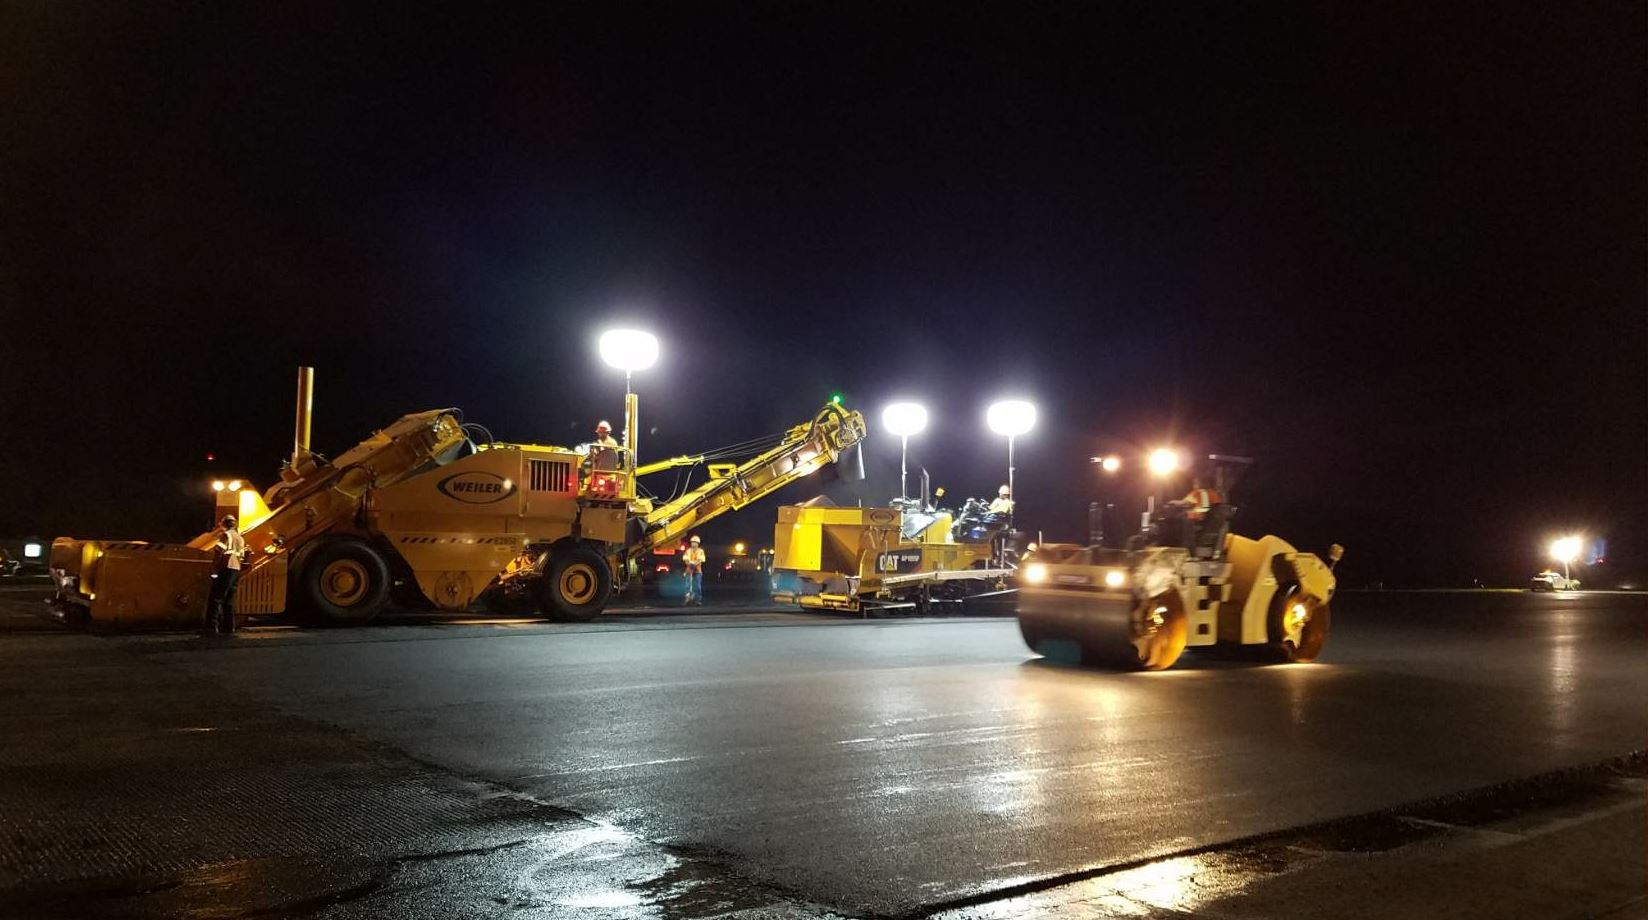 Most of Chemung's asphalt paving projects are DOT maintenance paving. Dalrymple estimates that around 25 percent of the company's asphalt paving is airport work, 5 percent is private, and the rest is DOT and municipal work.